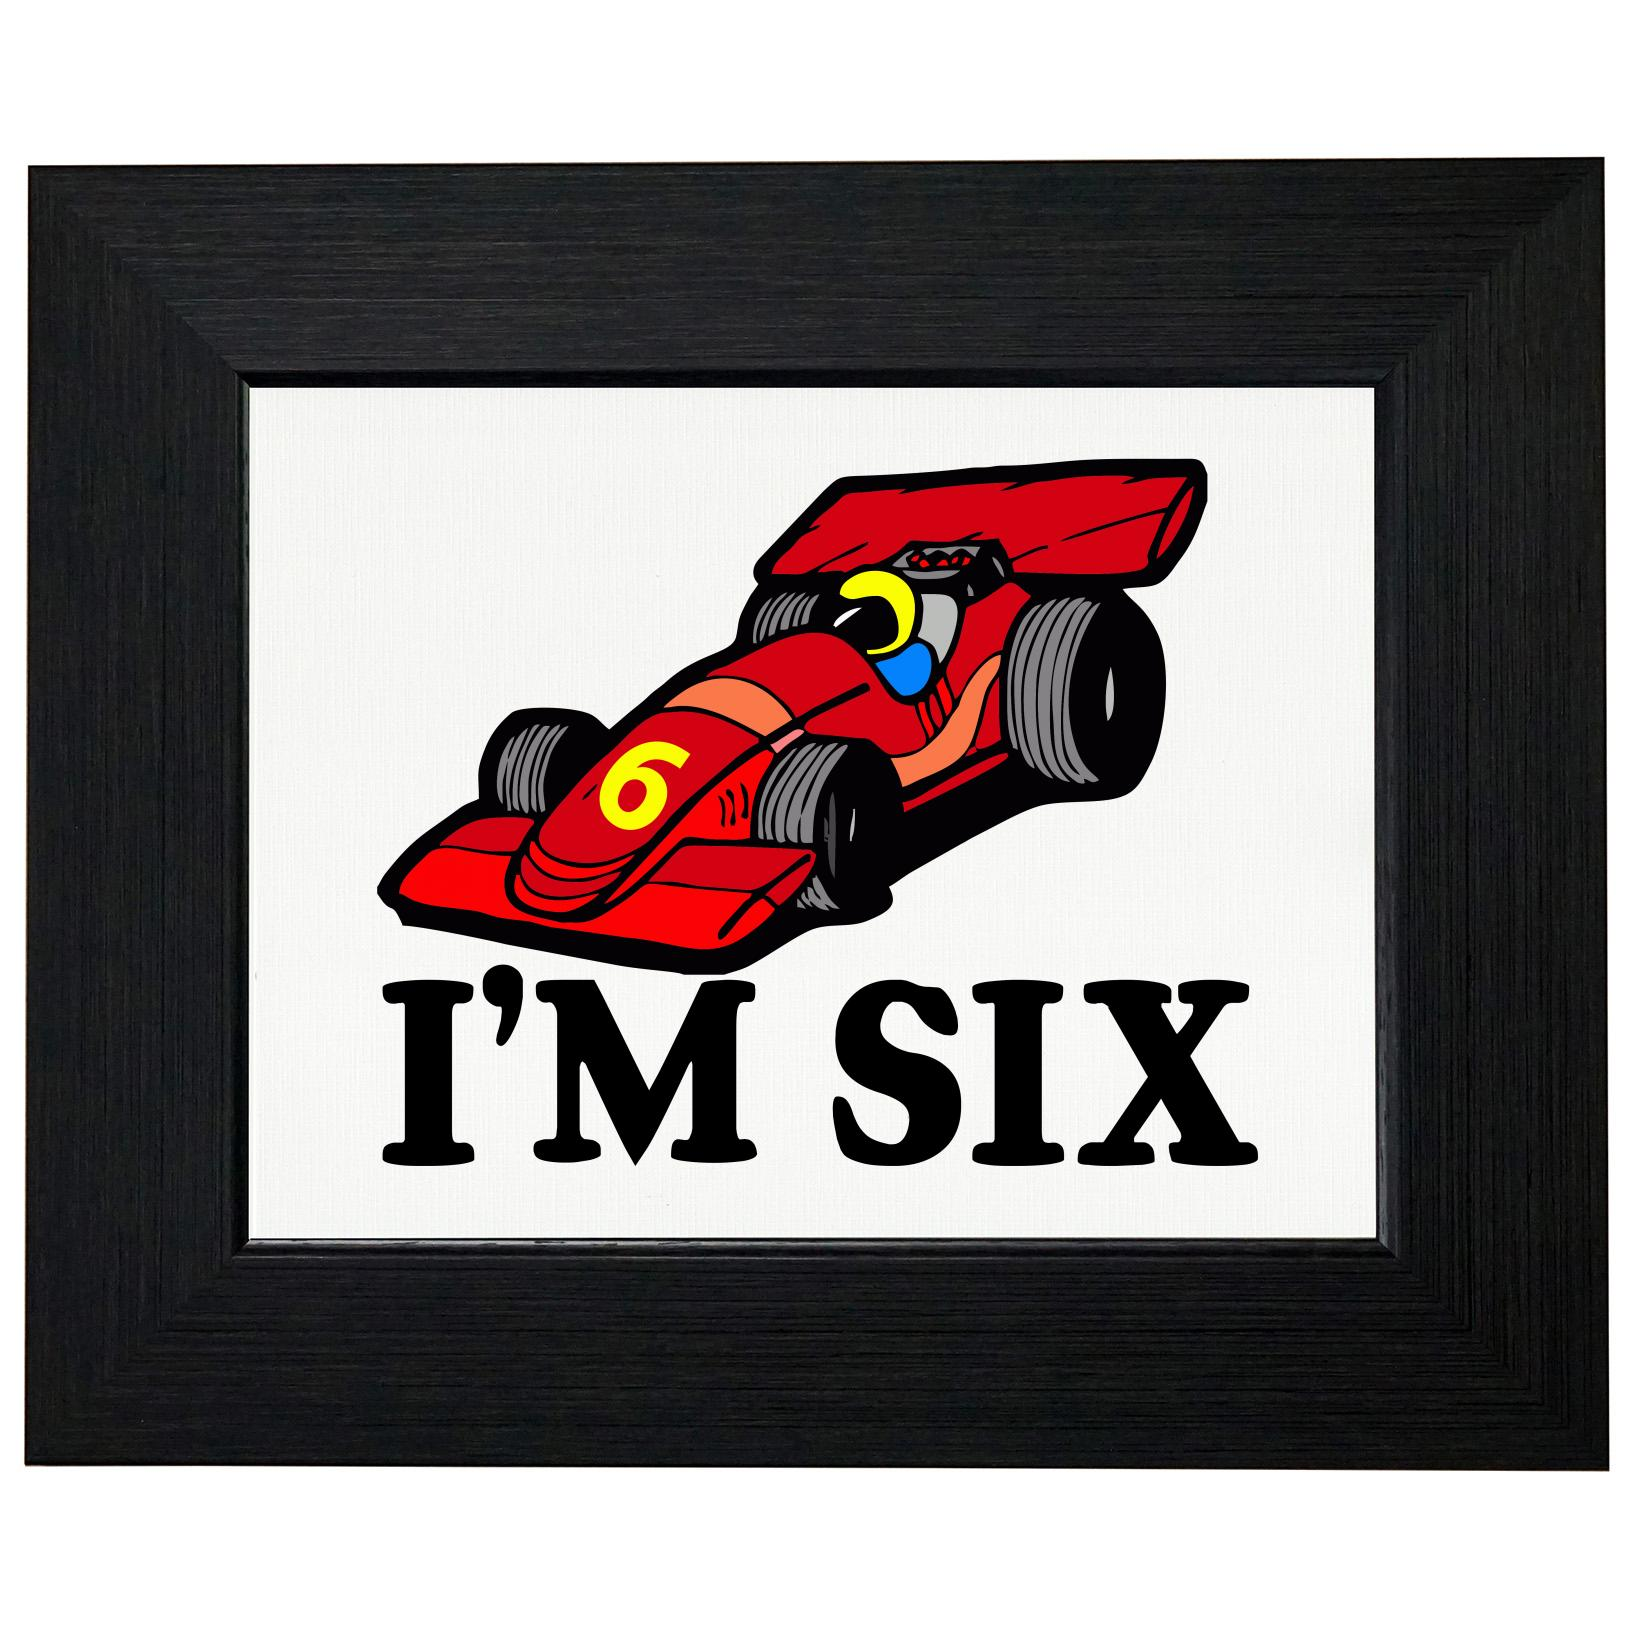 I'm 6 - Cartoon Race Car - Sixth Birthday - Party Framed Print Poster Wall or Desk Mount Options